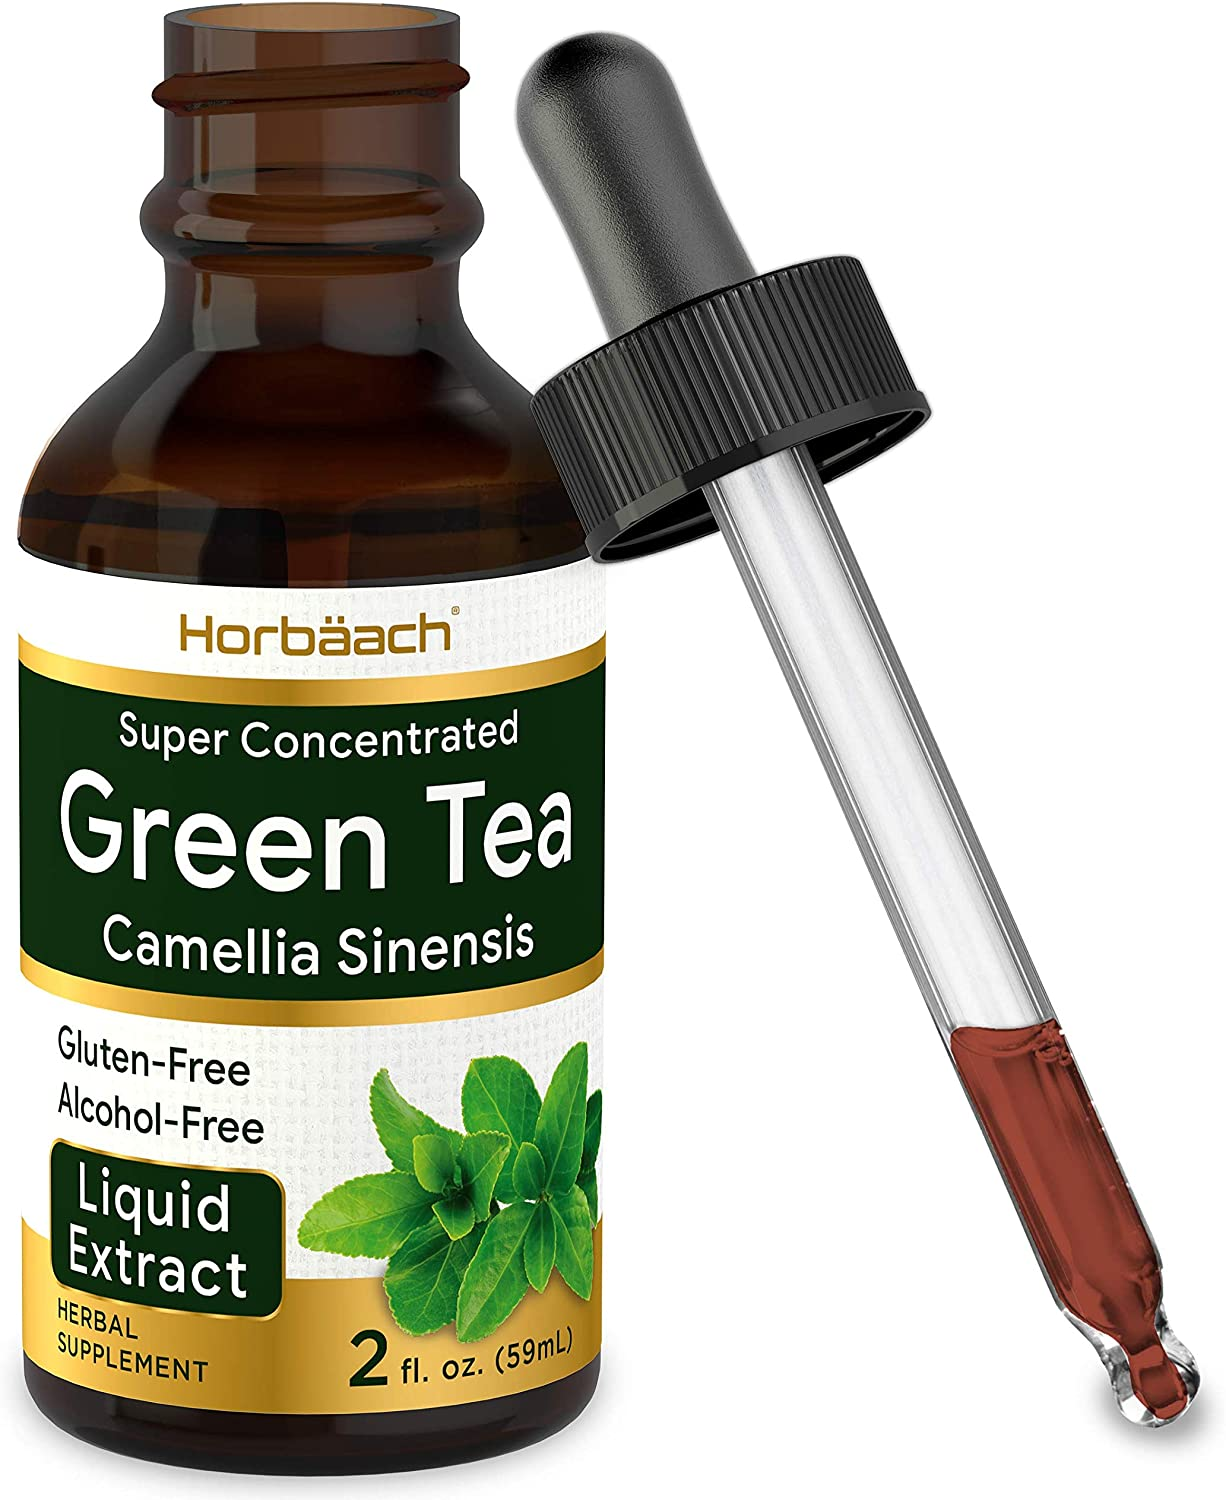 Green Tea Extract | 2 fl oz | Super Concentrated Liquid Supplement | Alcohol Free, Vegetarian, Non-GMO, Gluten Free | by Horbaach: Health & Personal Care